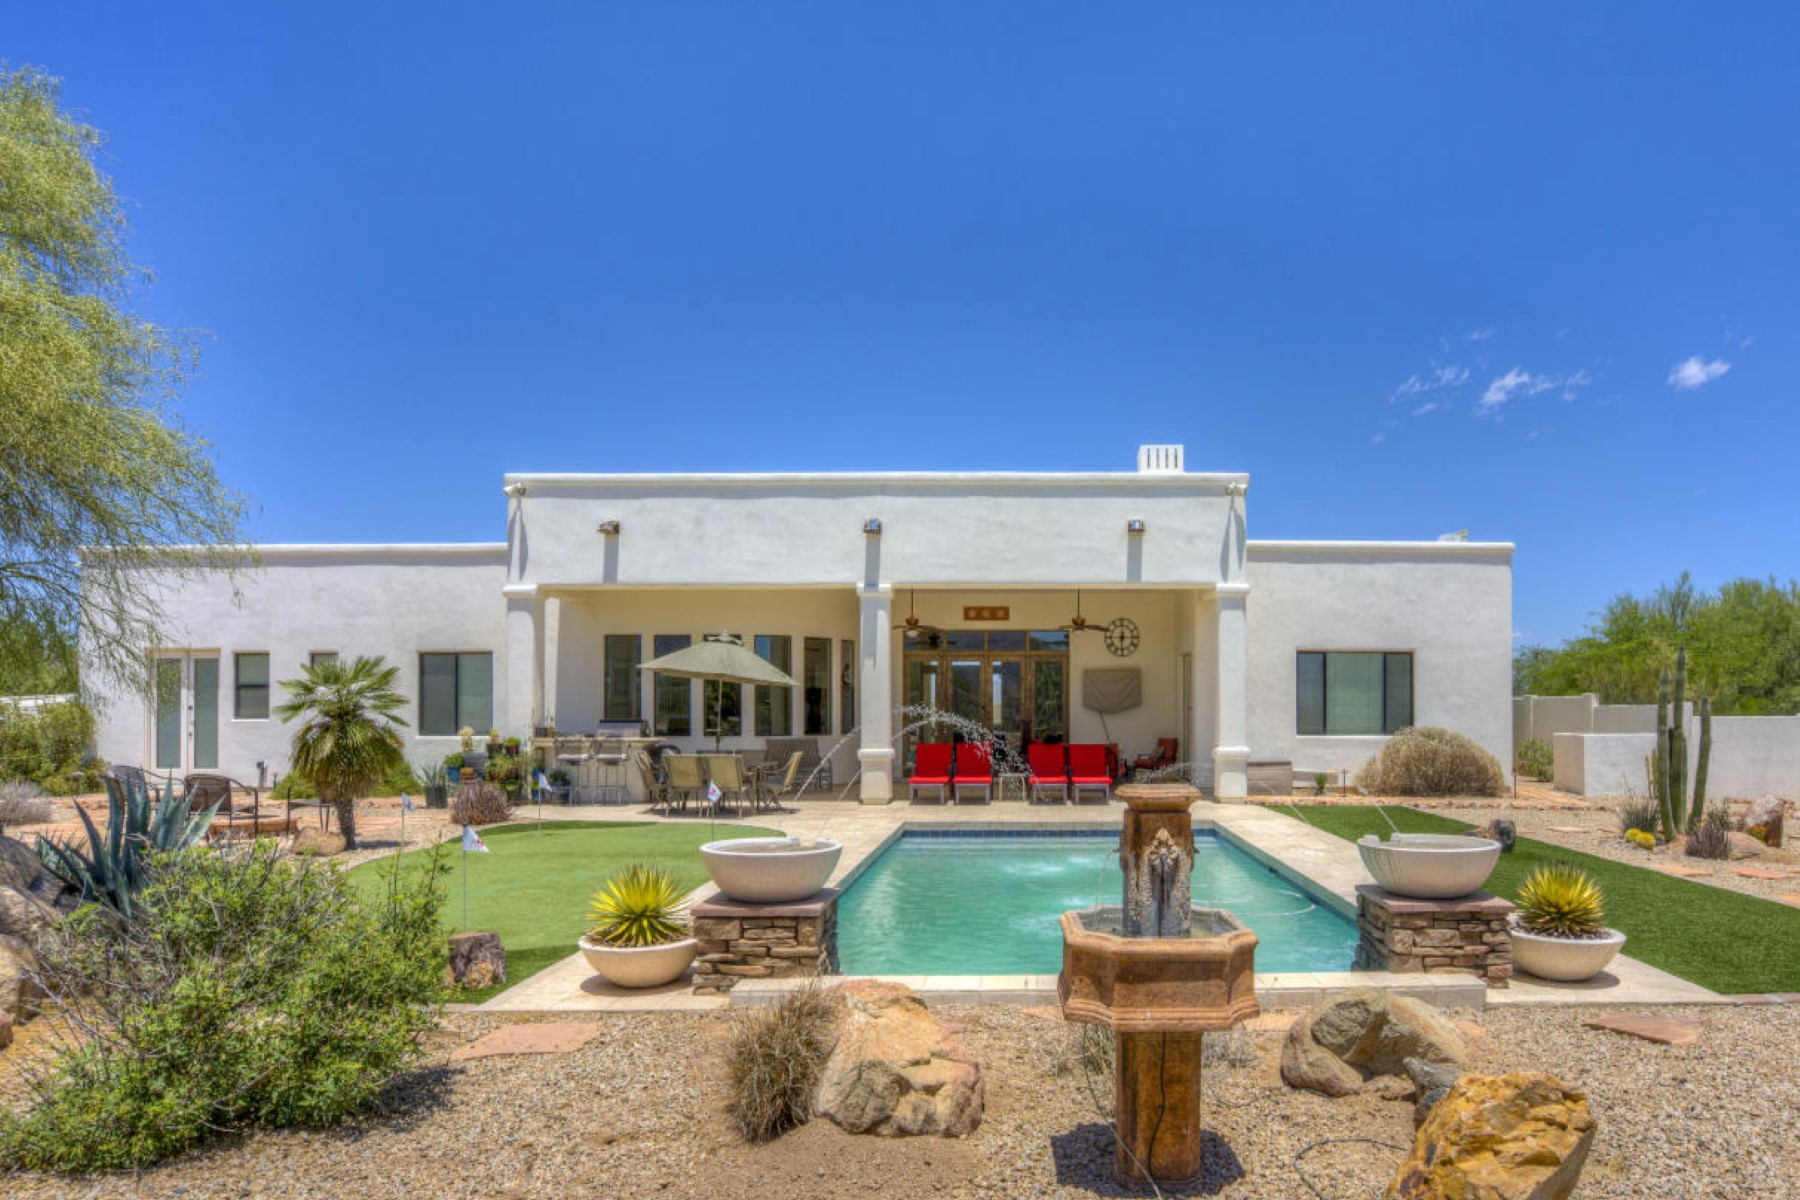 Single Family Home for Sale at Ultimate desert living in this stunning home on 1.25 acres 13813 E Quail Track Rd Scottsdale, Arizona, 85262 United States